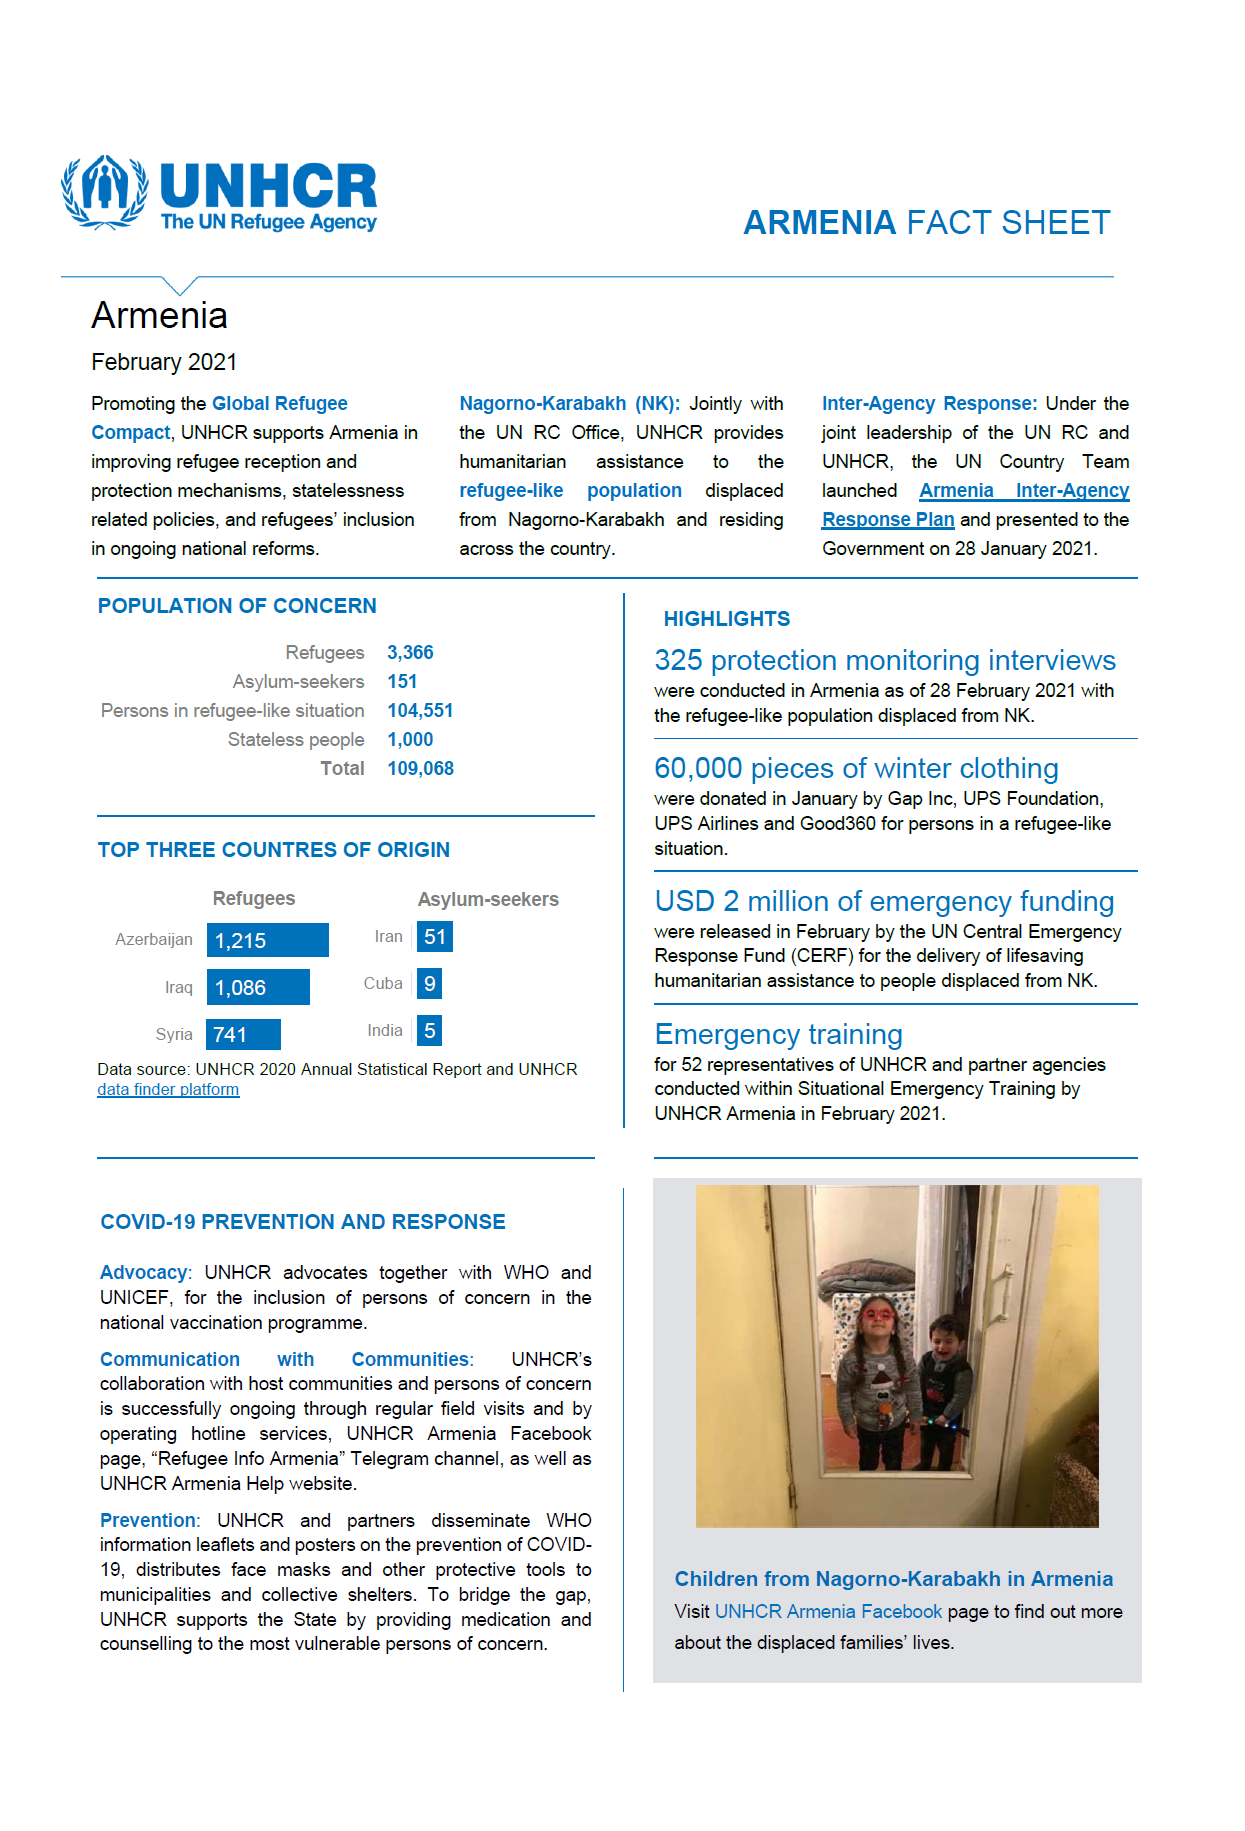 UNHCR Fact Sheet's cover page for February 2021